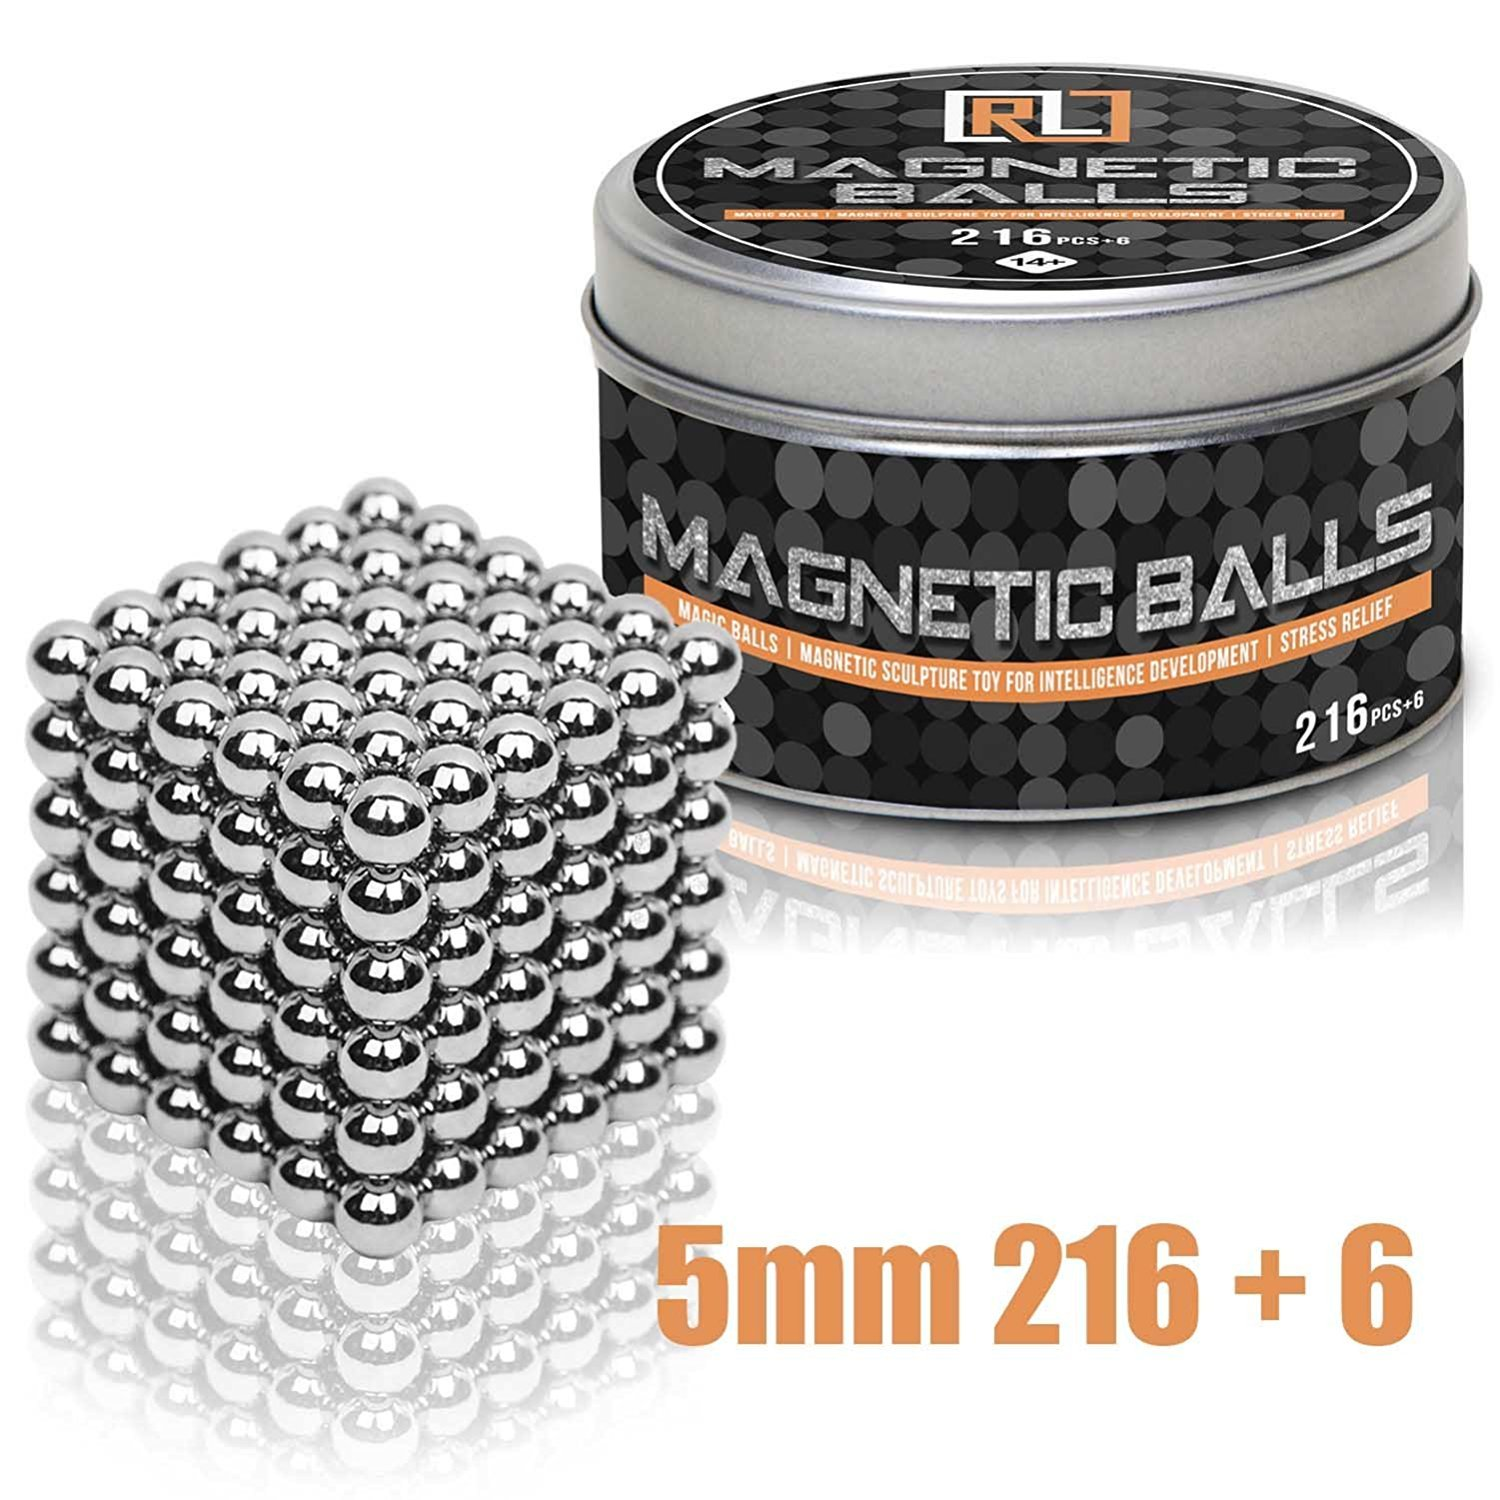 R&L Magnetic Sphere 216 PCS + 6 Magic Building Blocks Educational Fidget Toy Rollable Magnets Fidget Toys for Anxiety Stress Relief